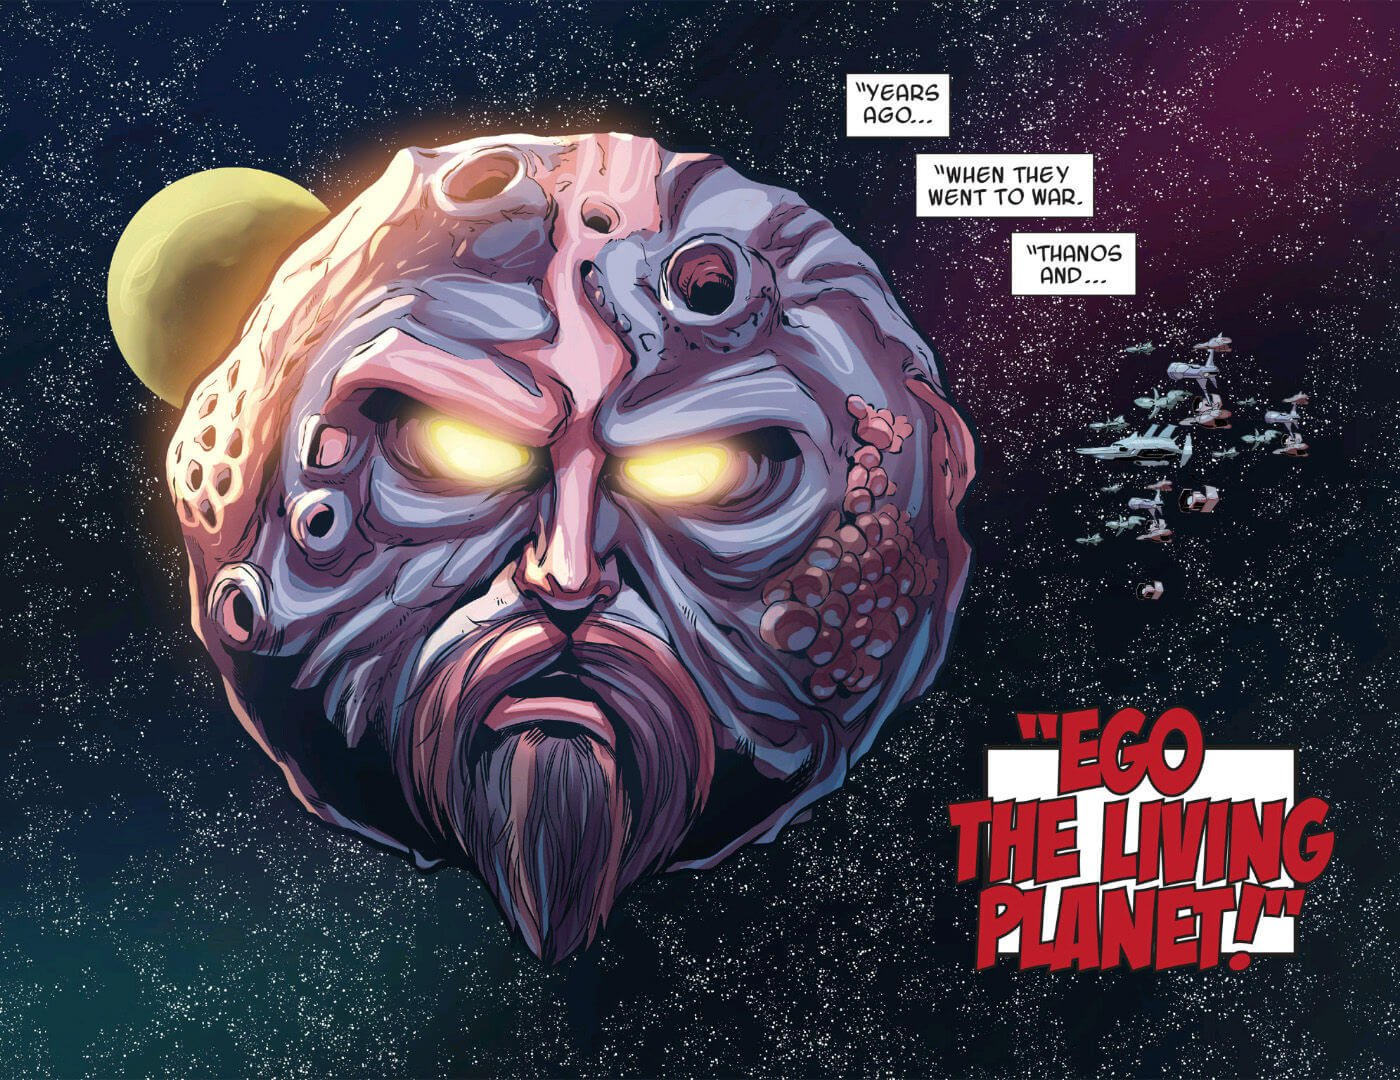 Ego-the-Living-Planet-from-Marvel-Comics